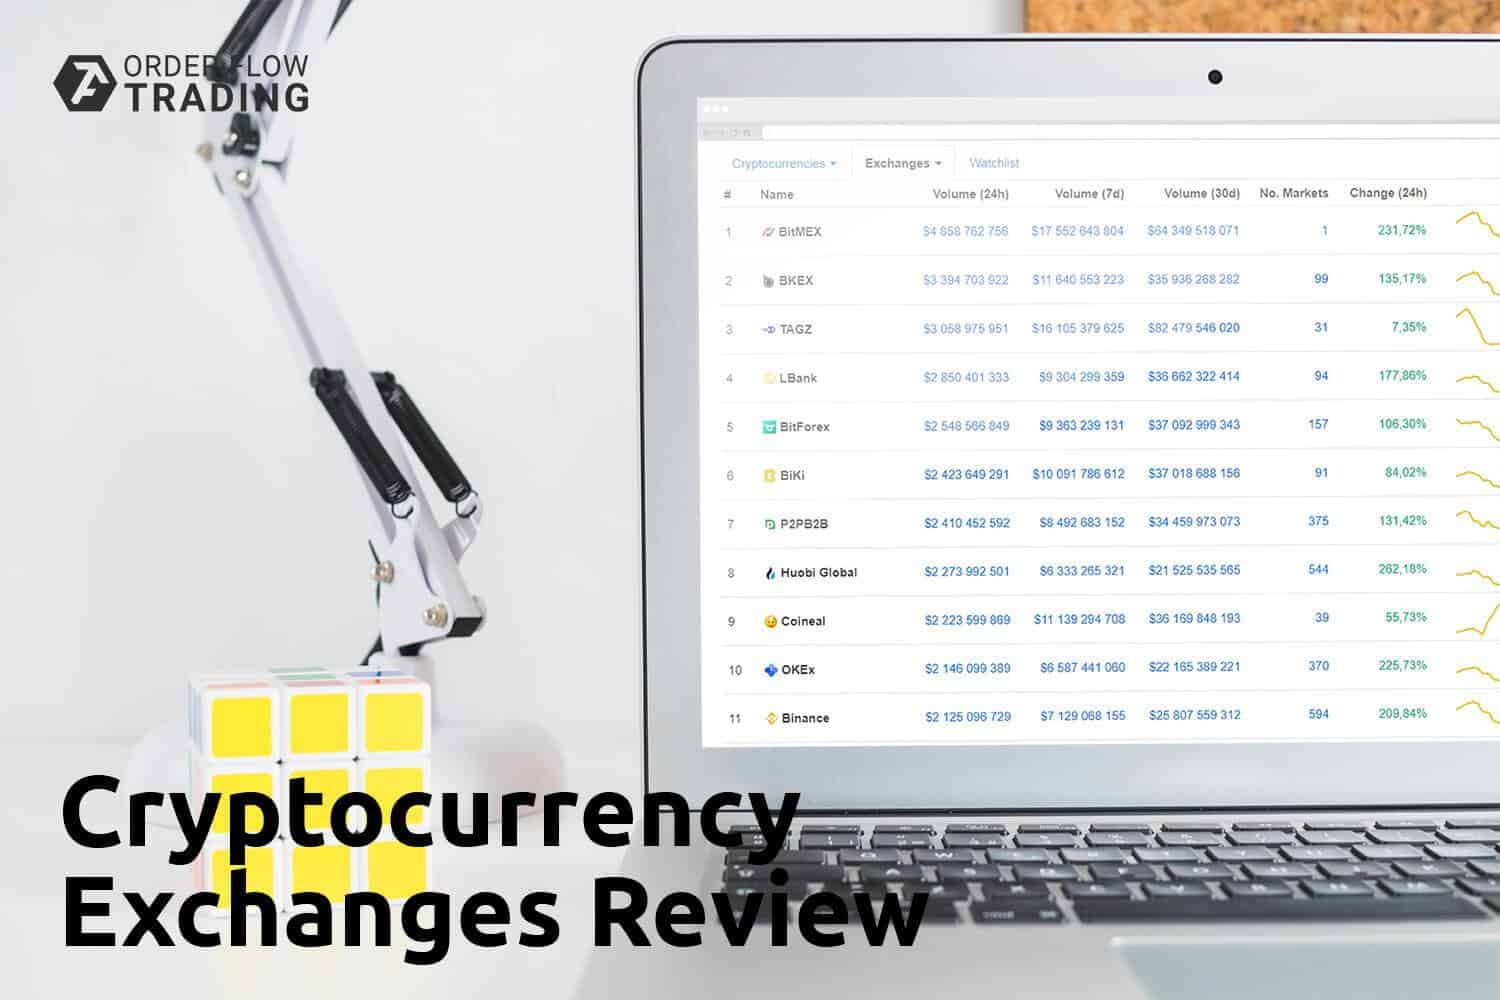 Review of the top 9 cryptocurrency exchanges